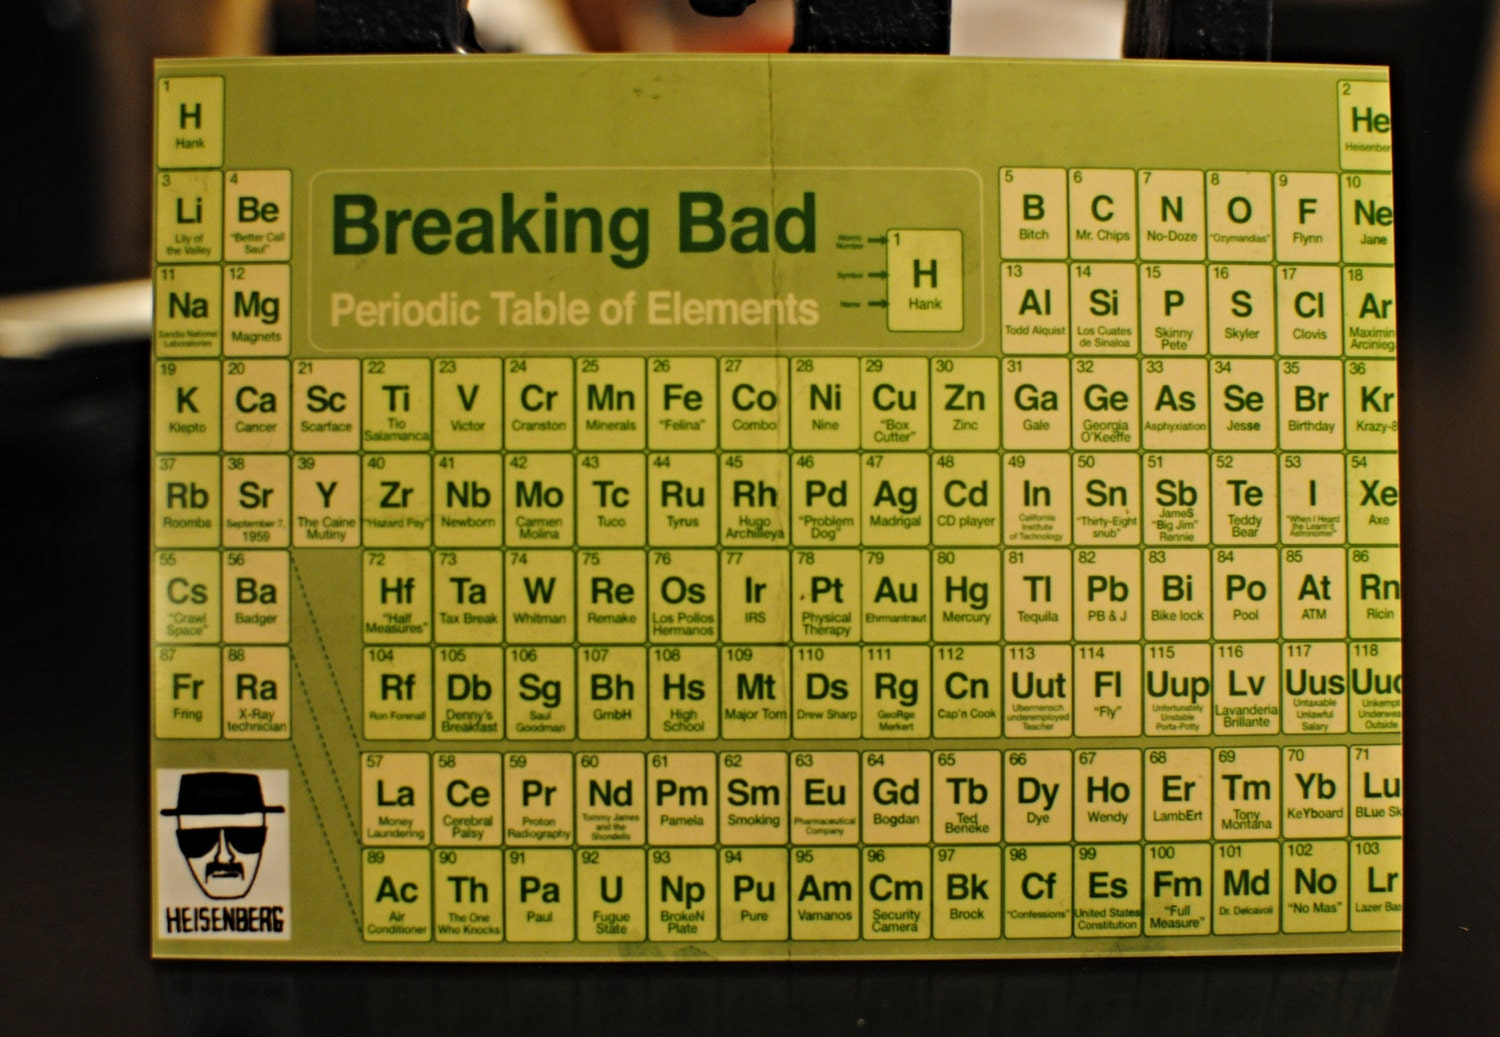 Breaking bad periodic table ne pictures to pin on pinterest breaking gamestrikefo Image collections